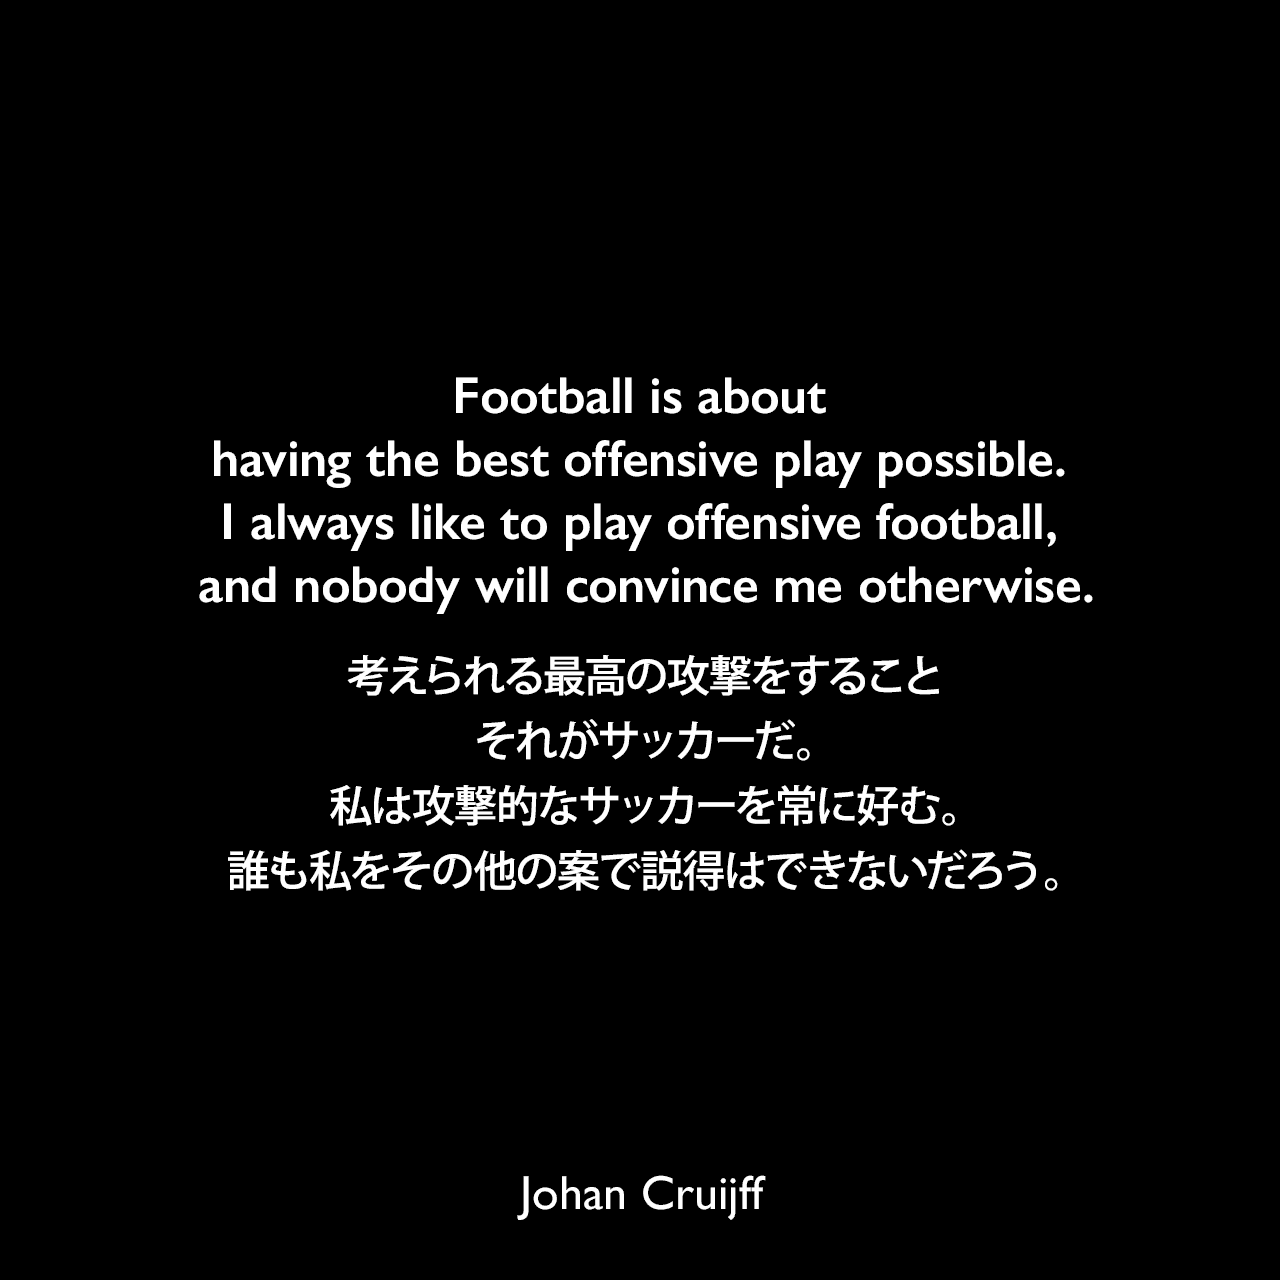 Football is about having the best offensive play possible. I always like to play offensive football, and nobody will convince me otherwise.考えられる最高の攻撃をすること、それがサッカーだ。私は攻撃的なサッカーを常に好む。誰も私をその他の案で説得はできないだろう。Johan Cruijff